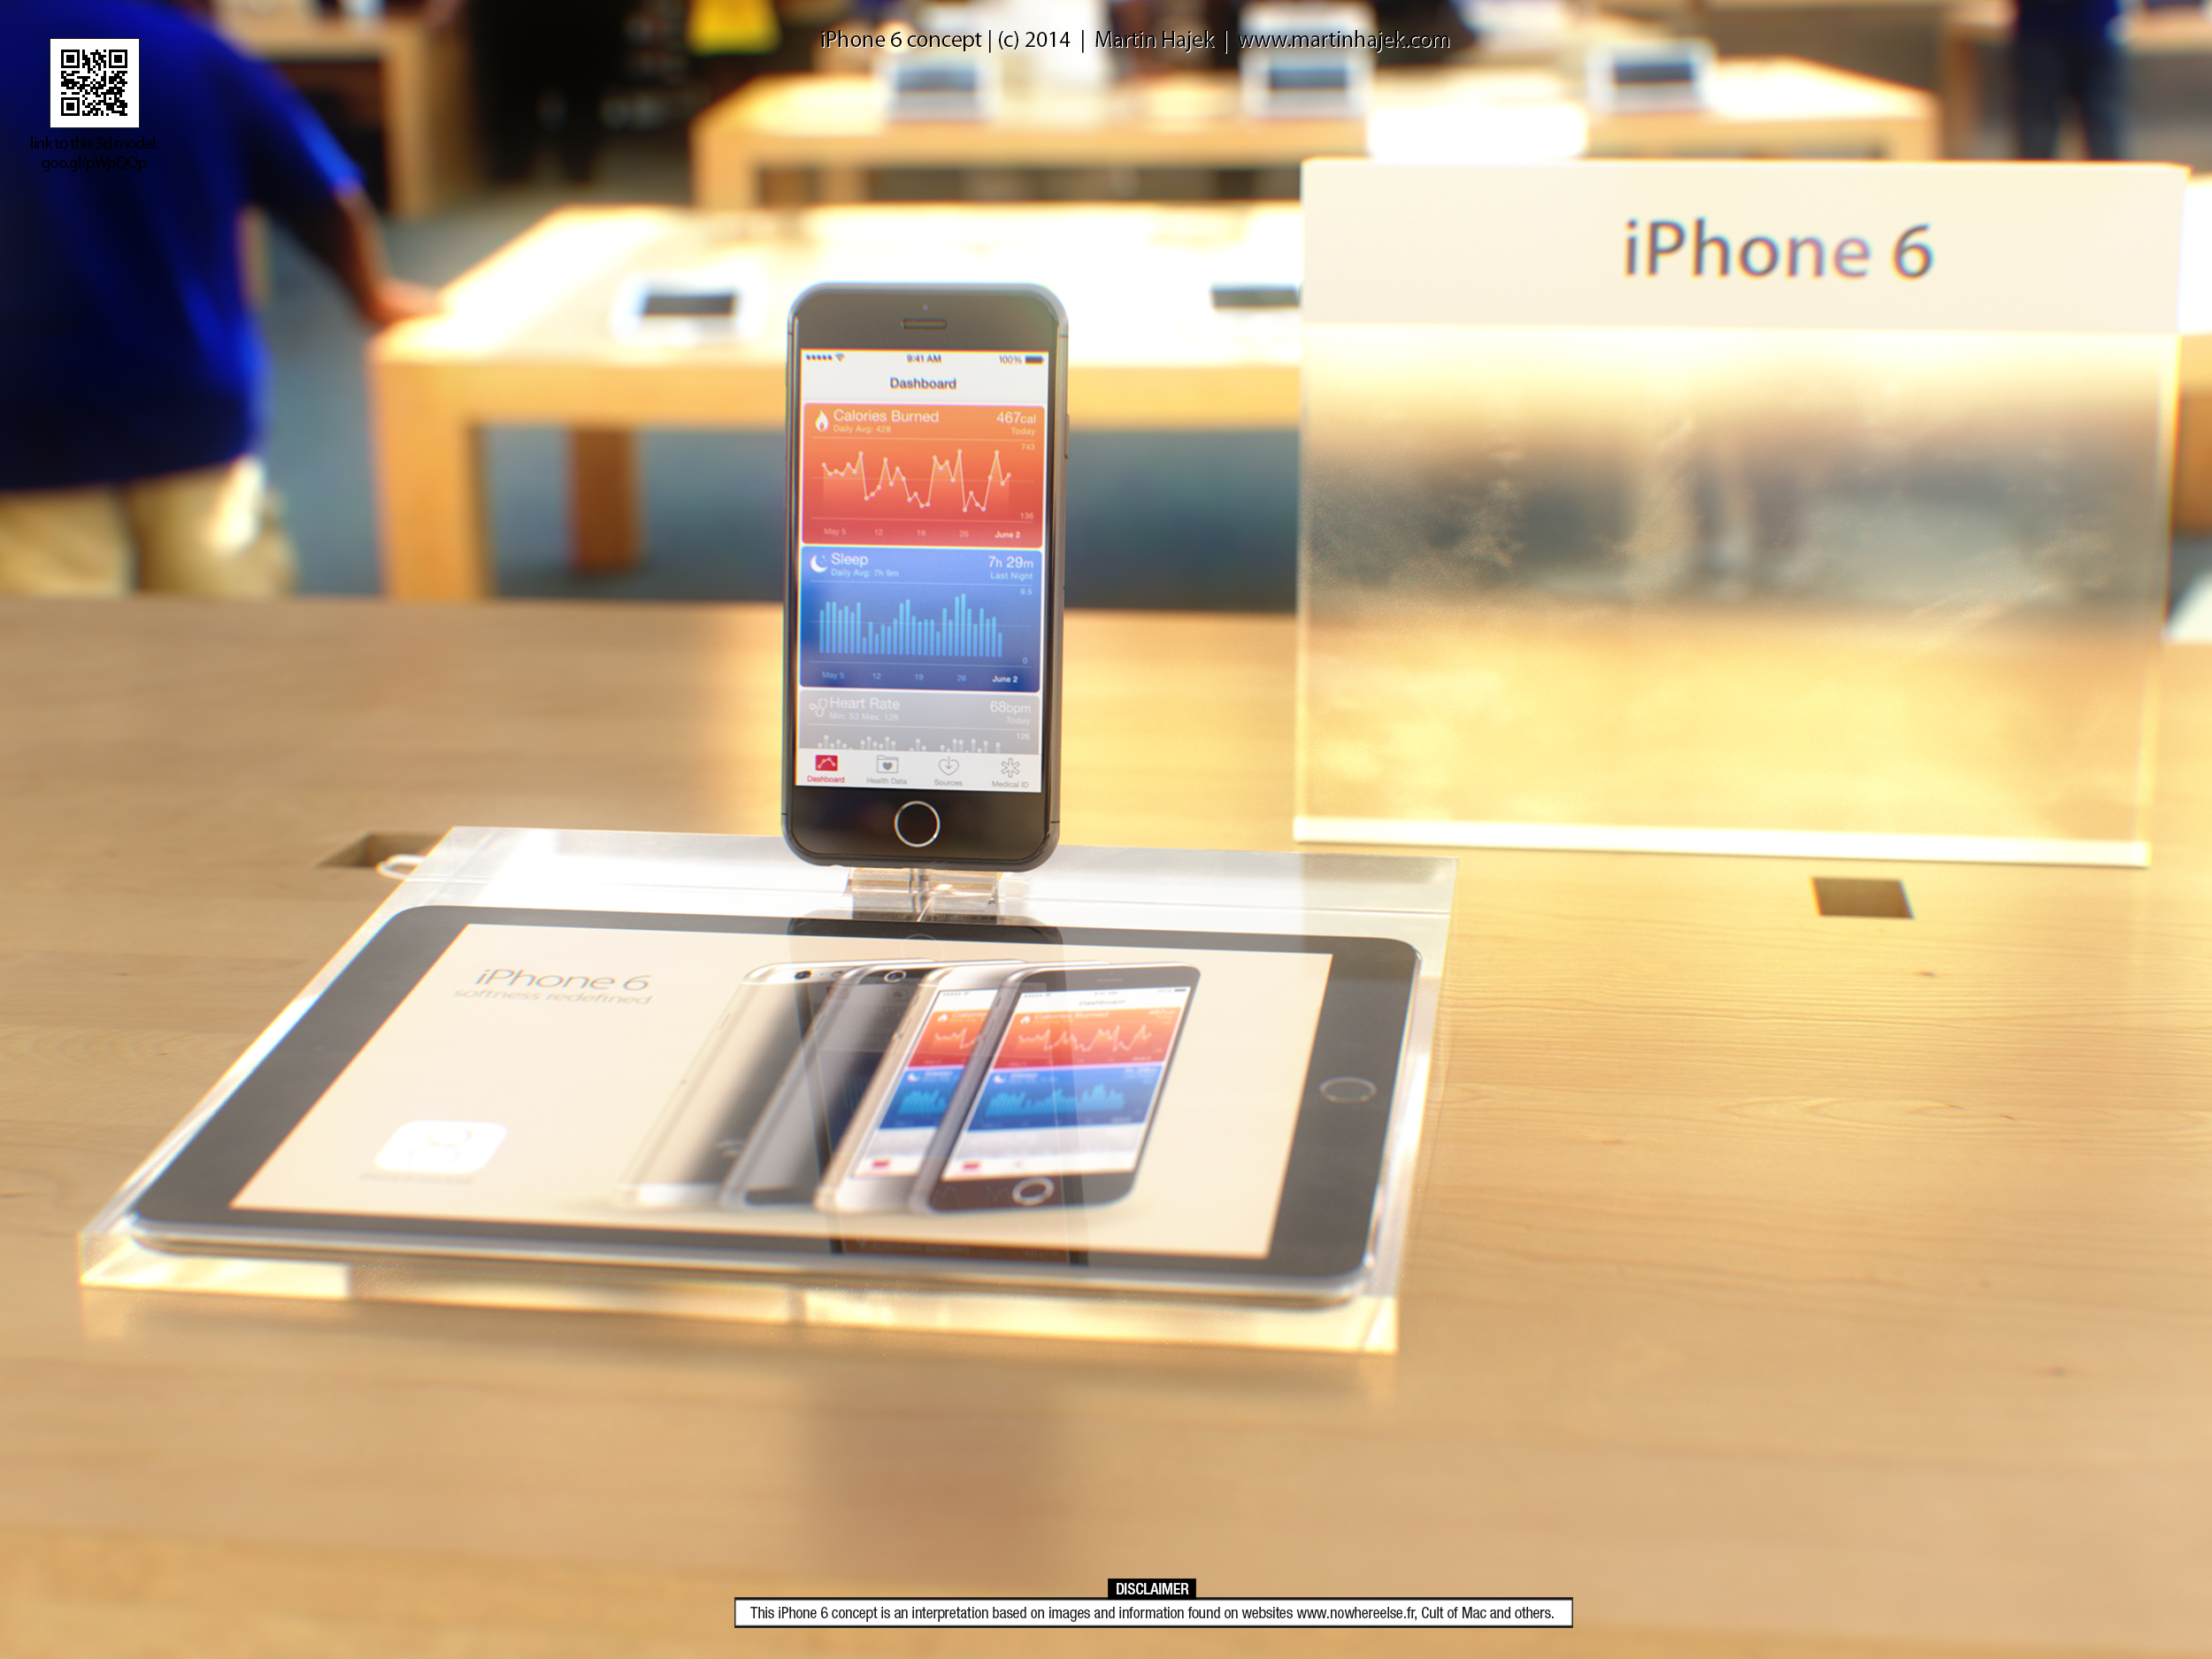 iPhone 6 in the store?